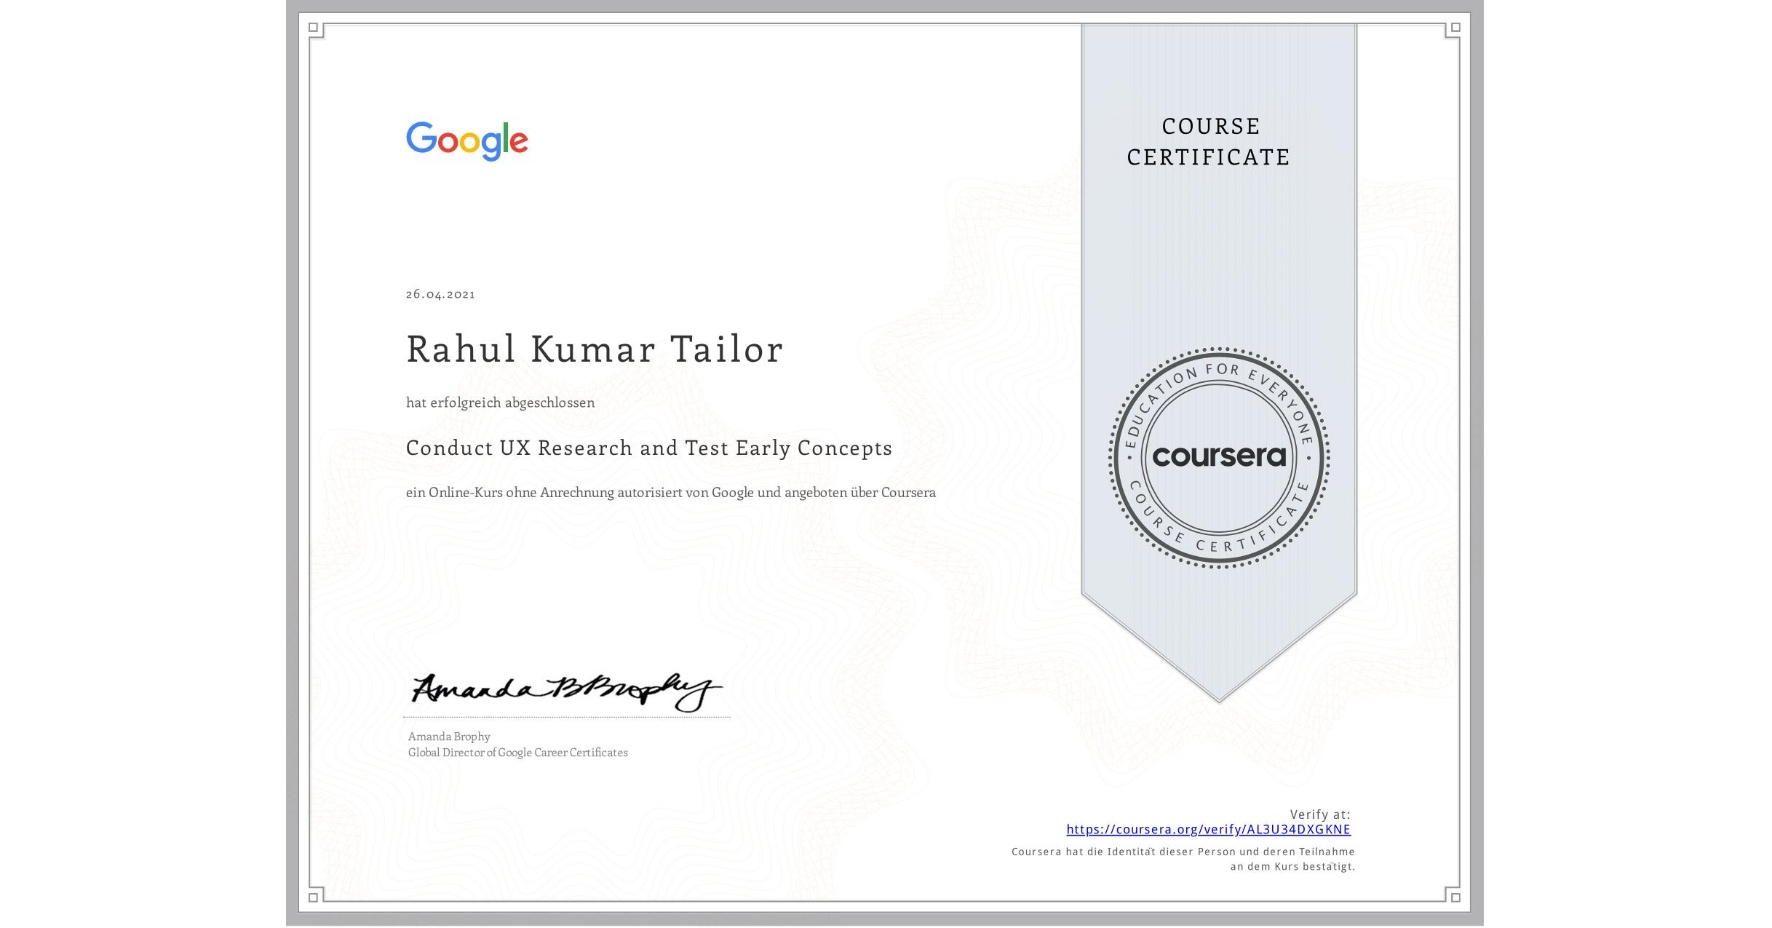 View certificate for Rahul Kumar Tailor, Conduct UX Research and Test Early Concepts, an online non-credit course authorized by Google and offered through Coursera